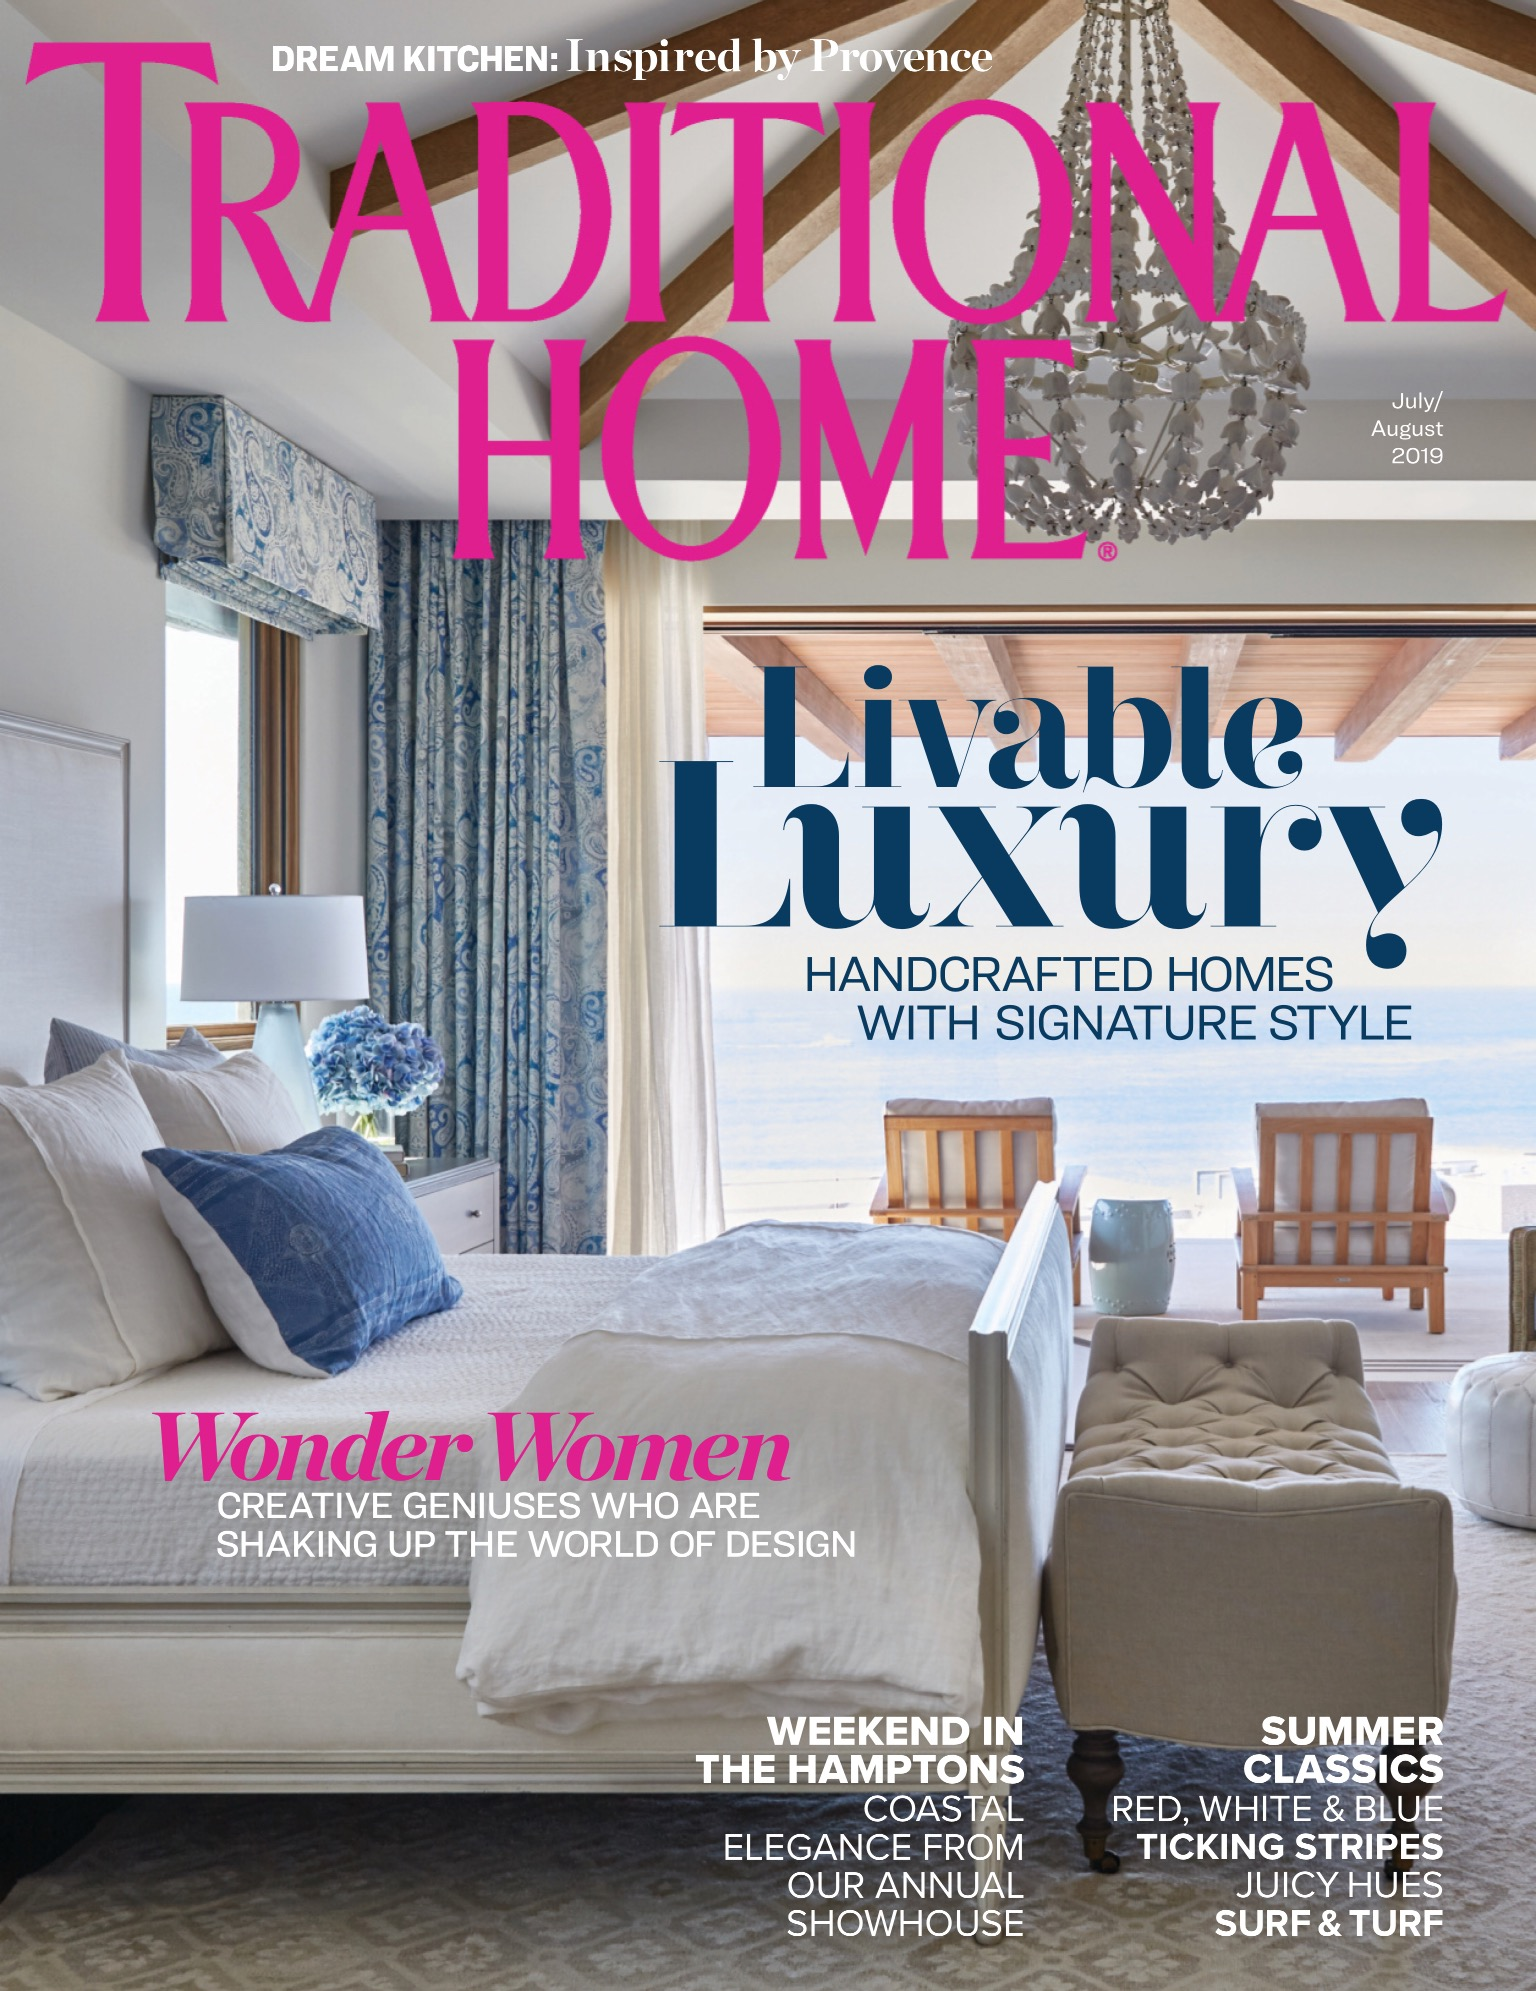 TraditionalHome_July_August19_Cover.jpg